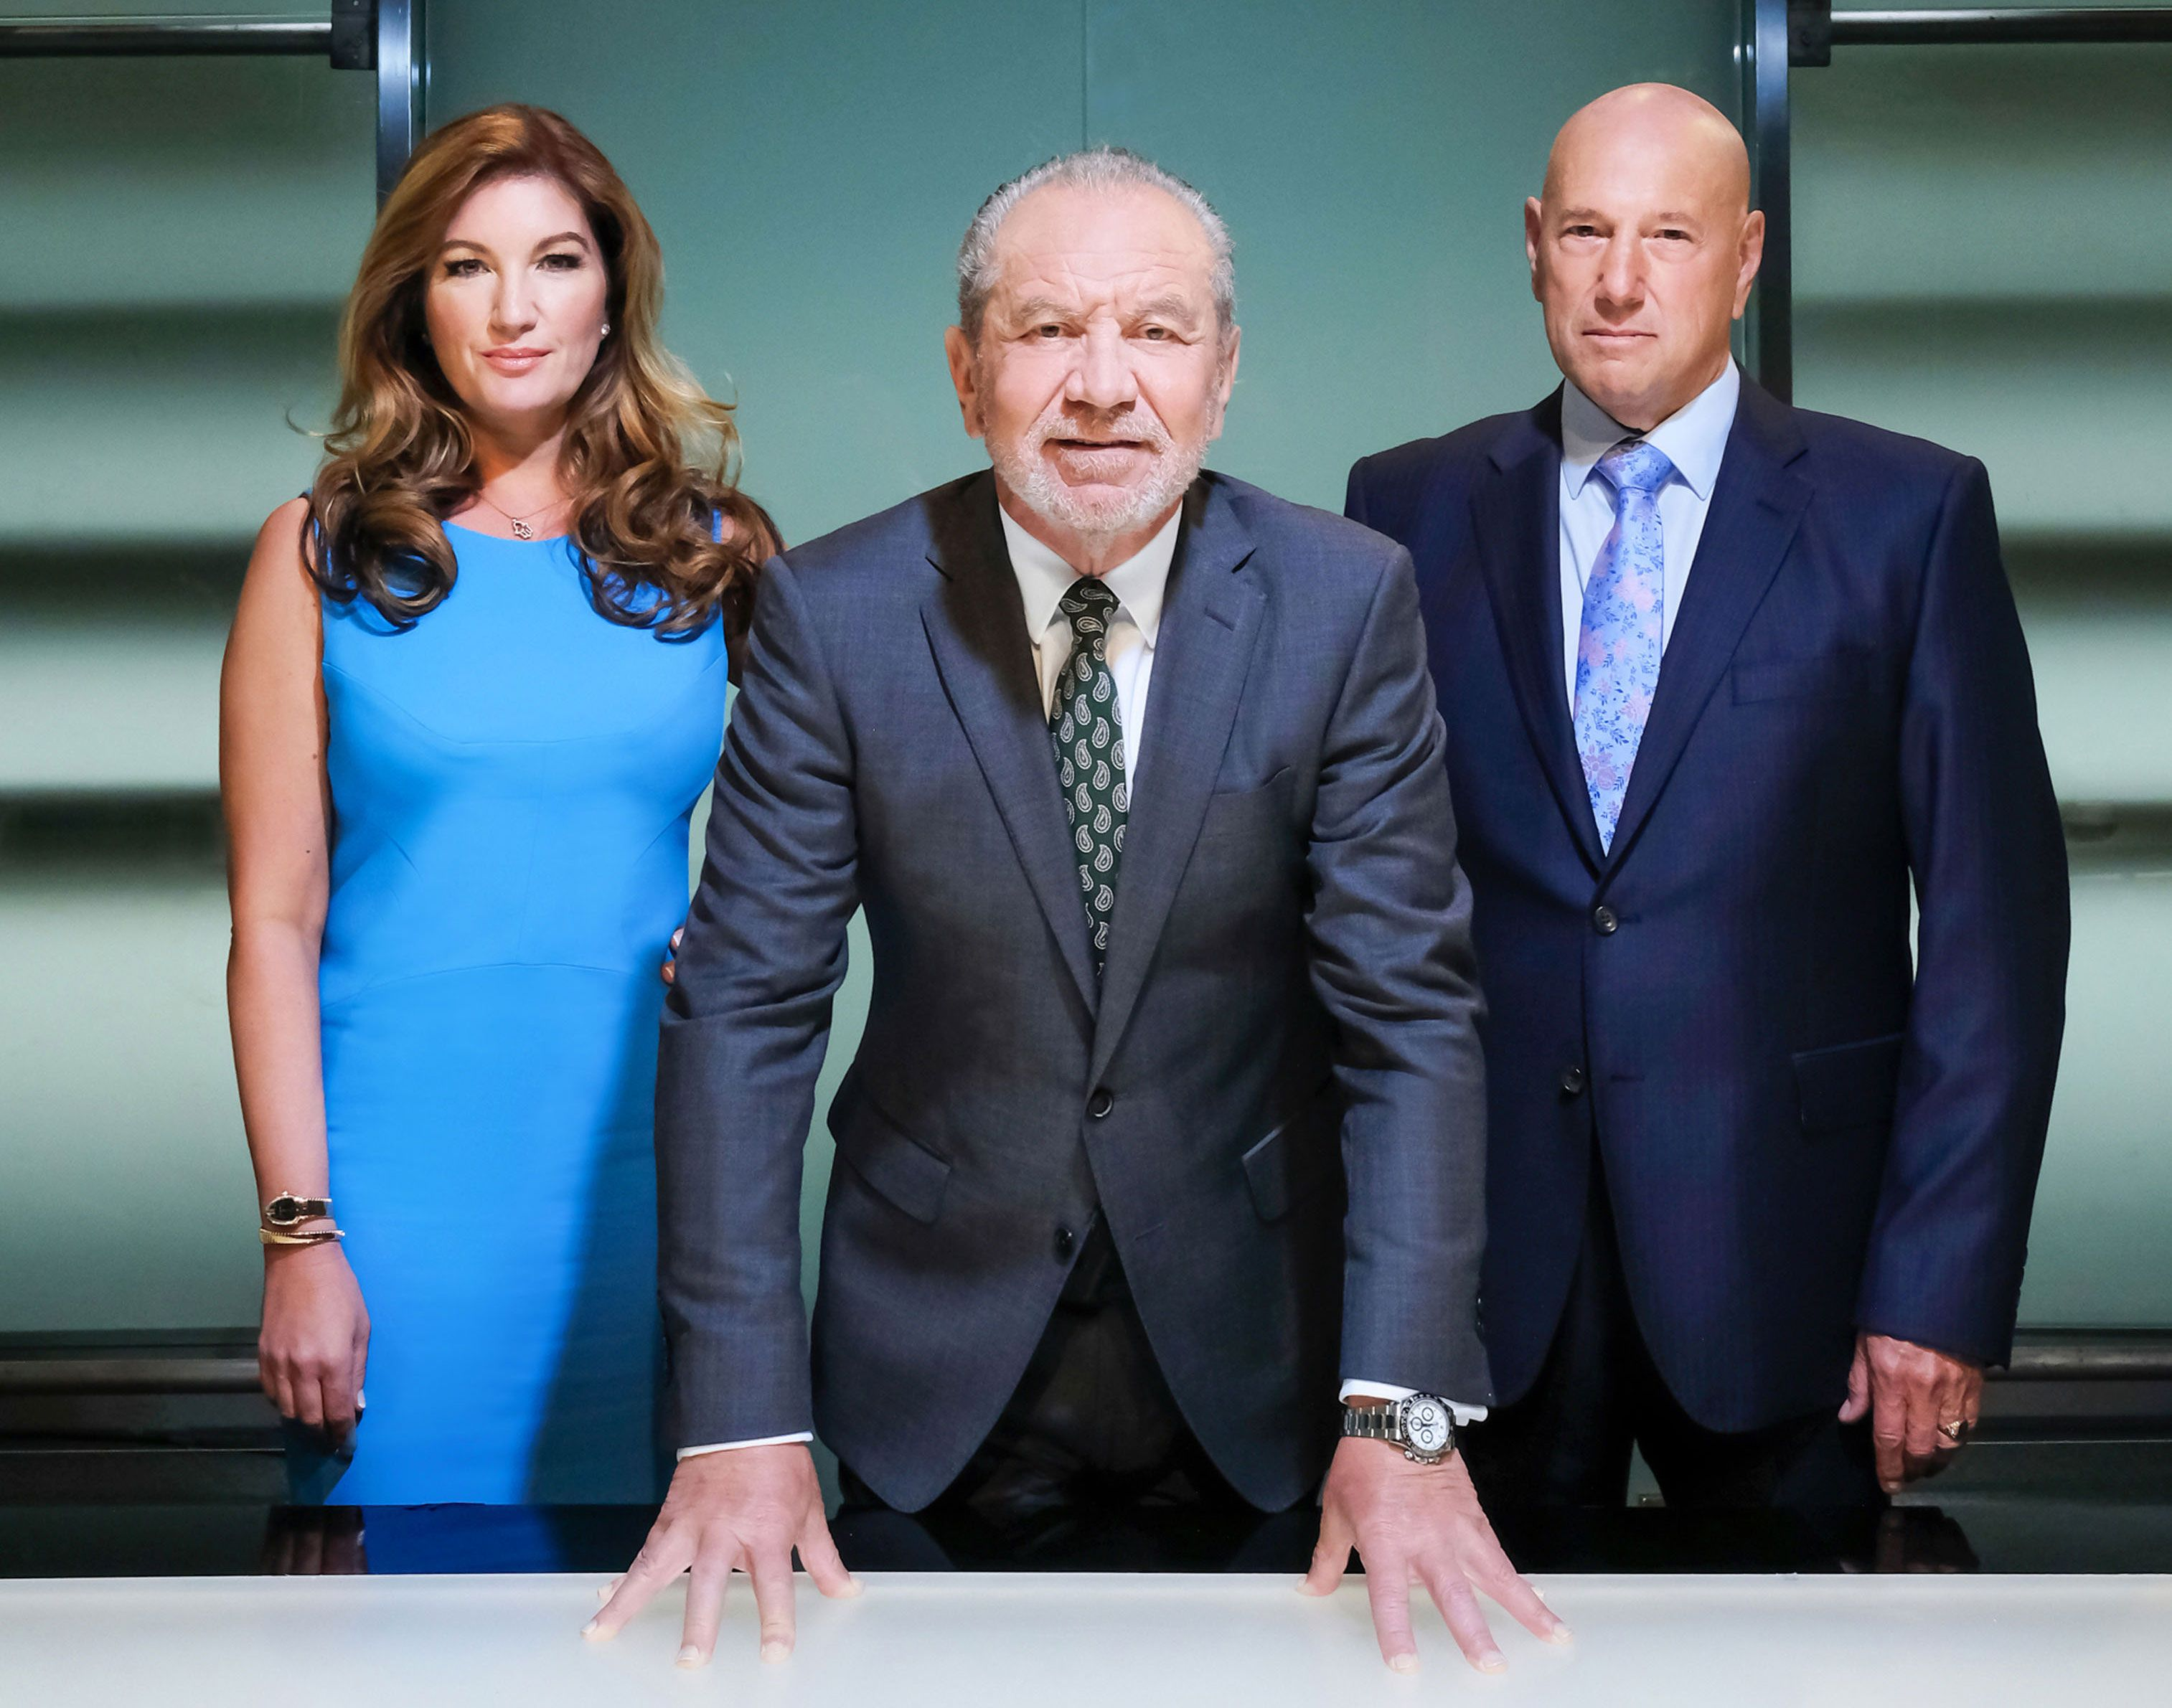 The Apprentice: You're Fired replaces Rhod Gilbert as host